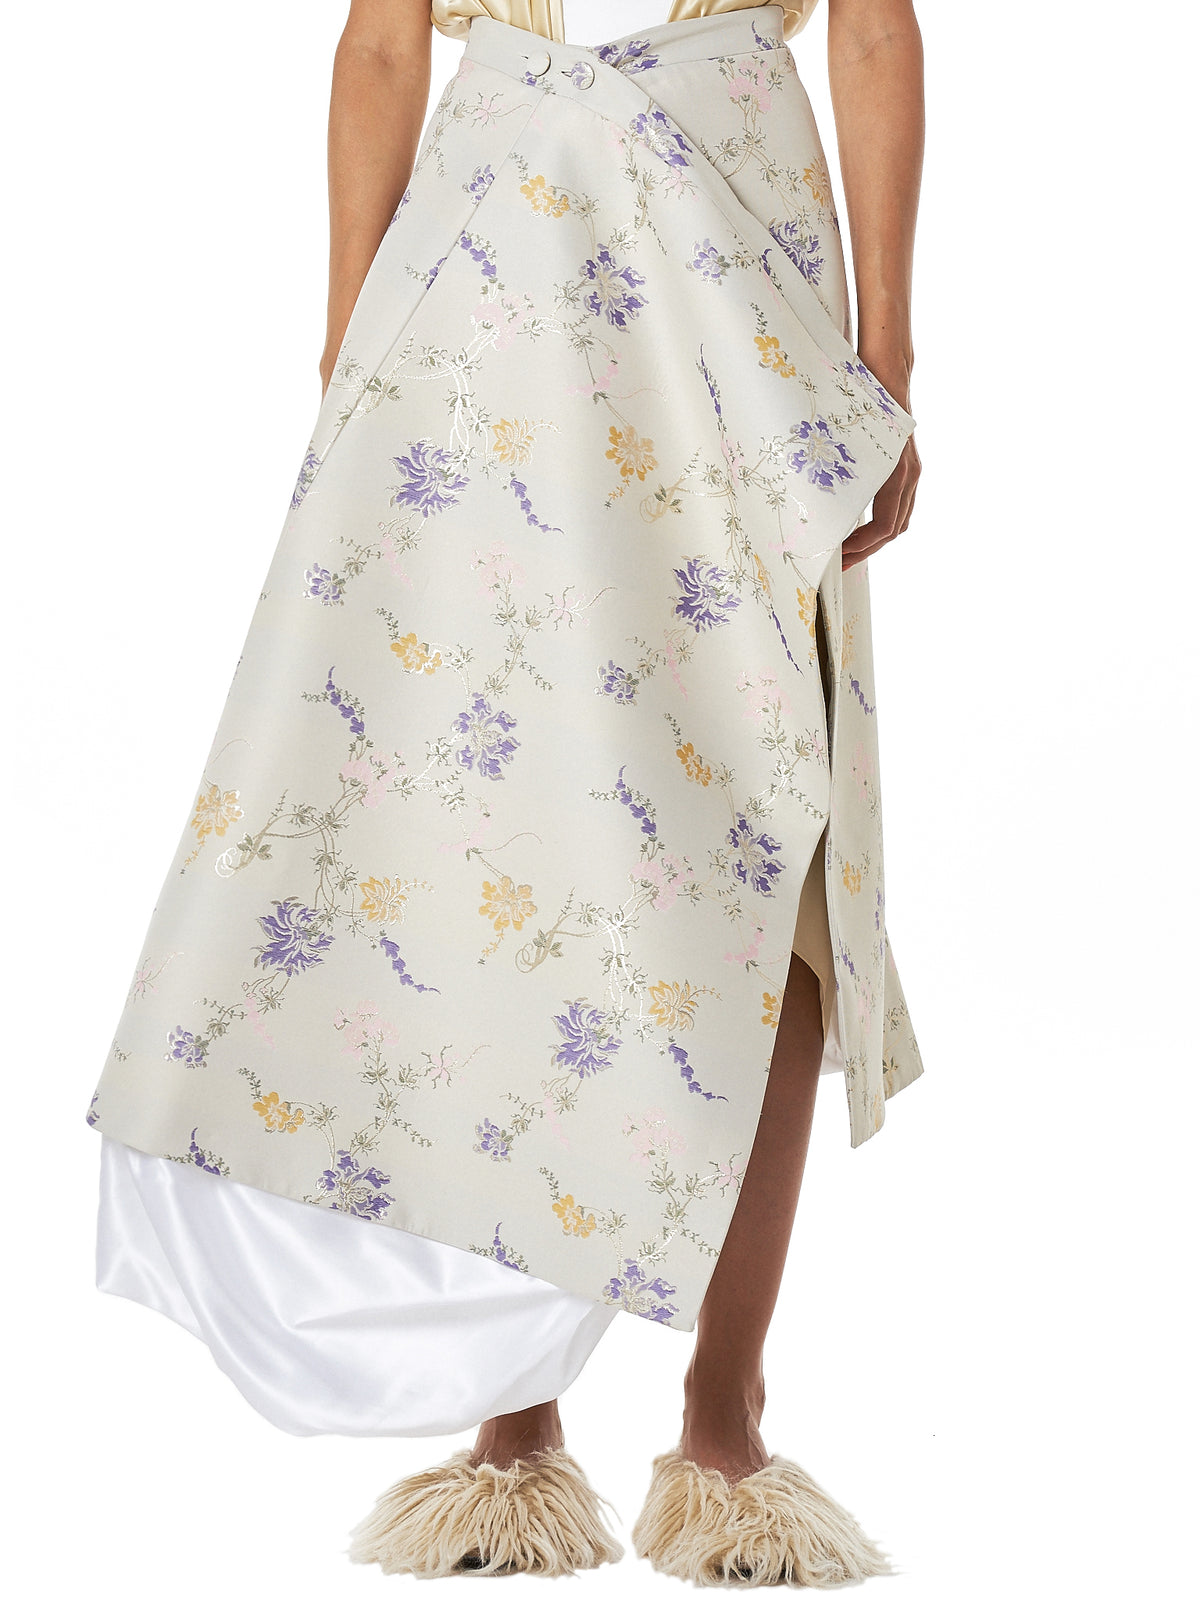 Y/Project Floral Skirt - Hlorenzo Front